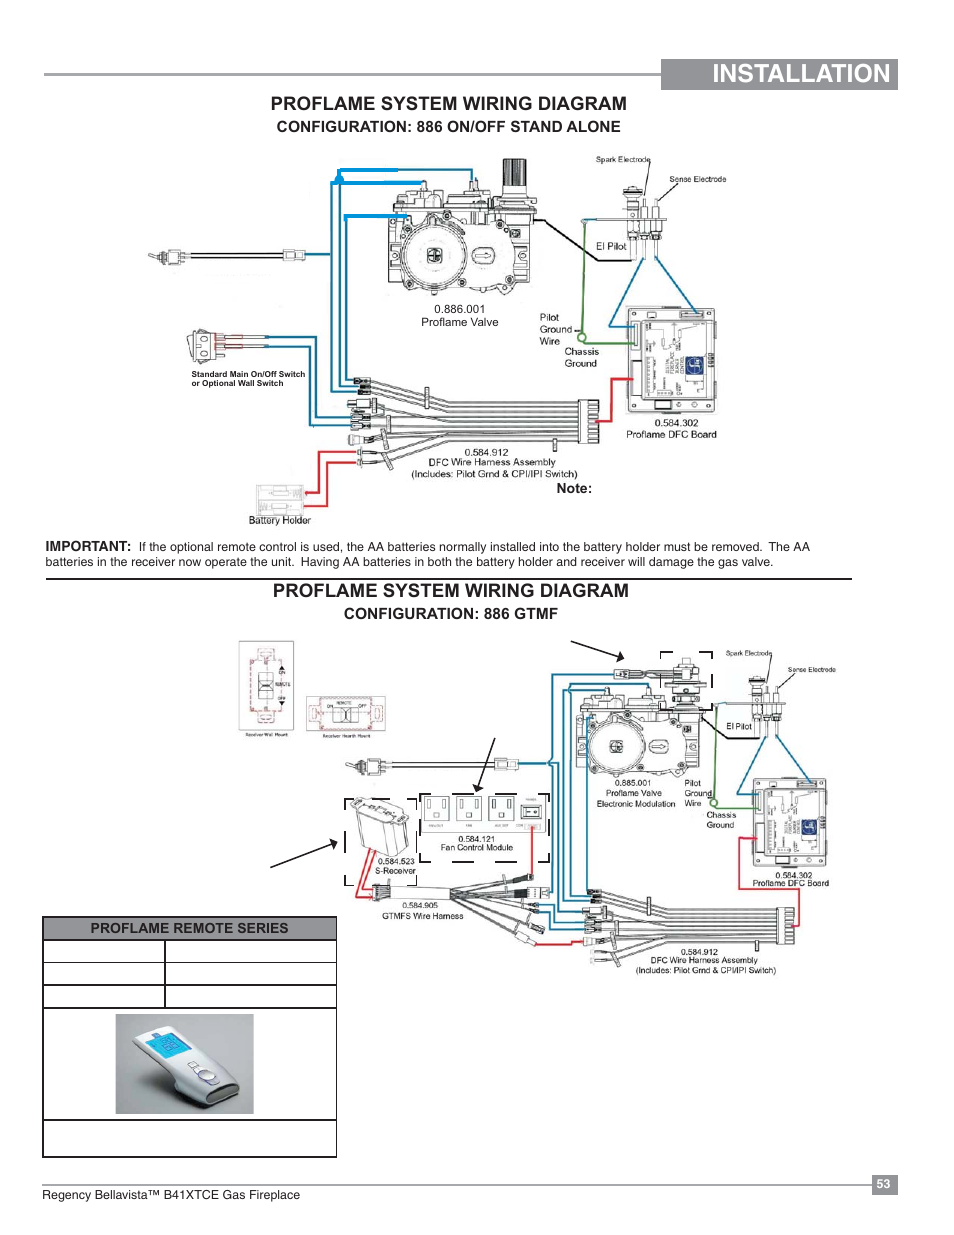 wrg 1056] 886 wiring diagraminstallation, proflame system wiring diagram regency bellavista b41xtce large gas fireplace user manual